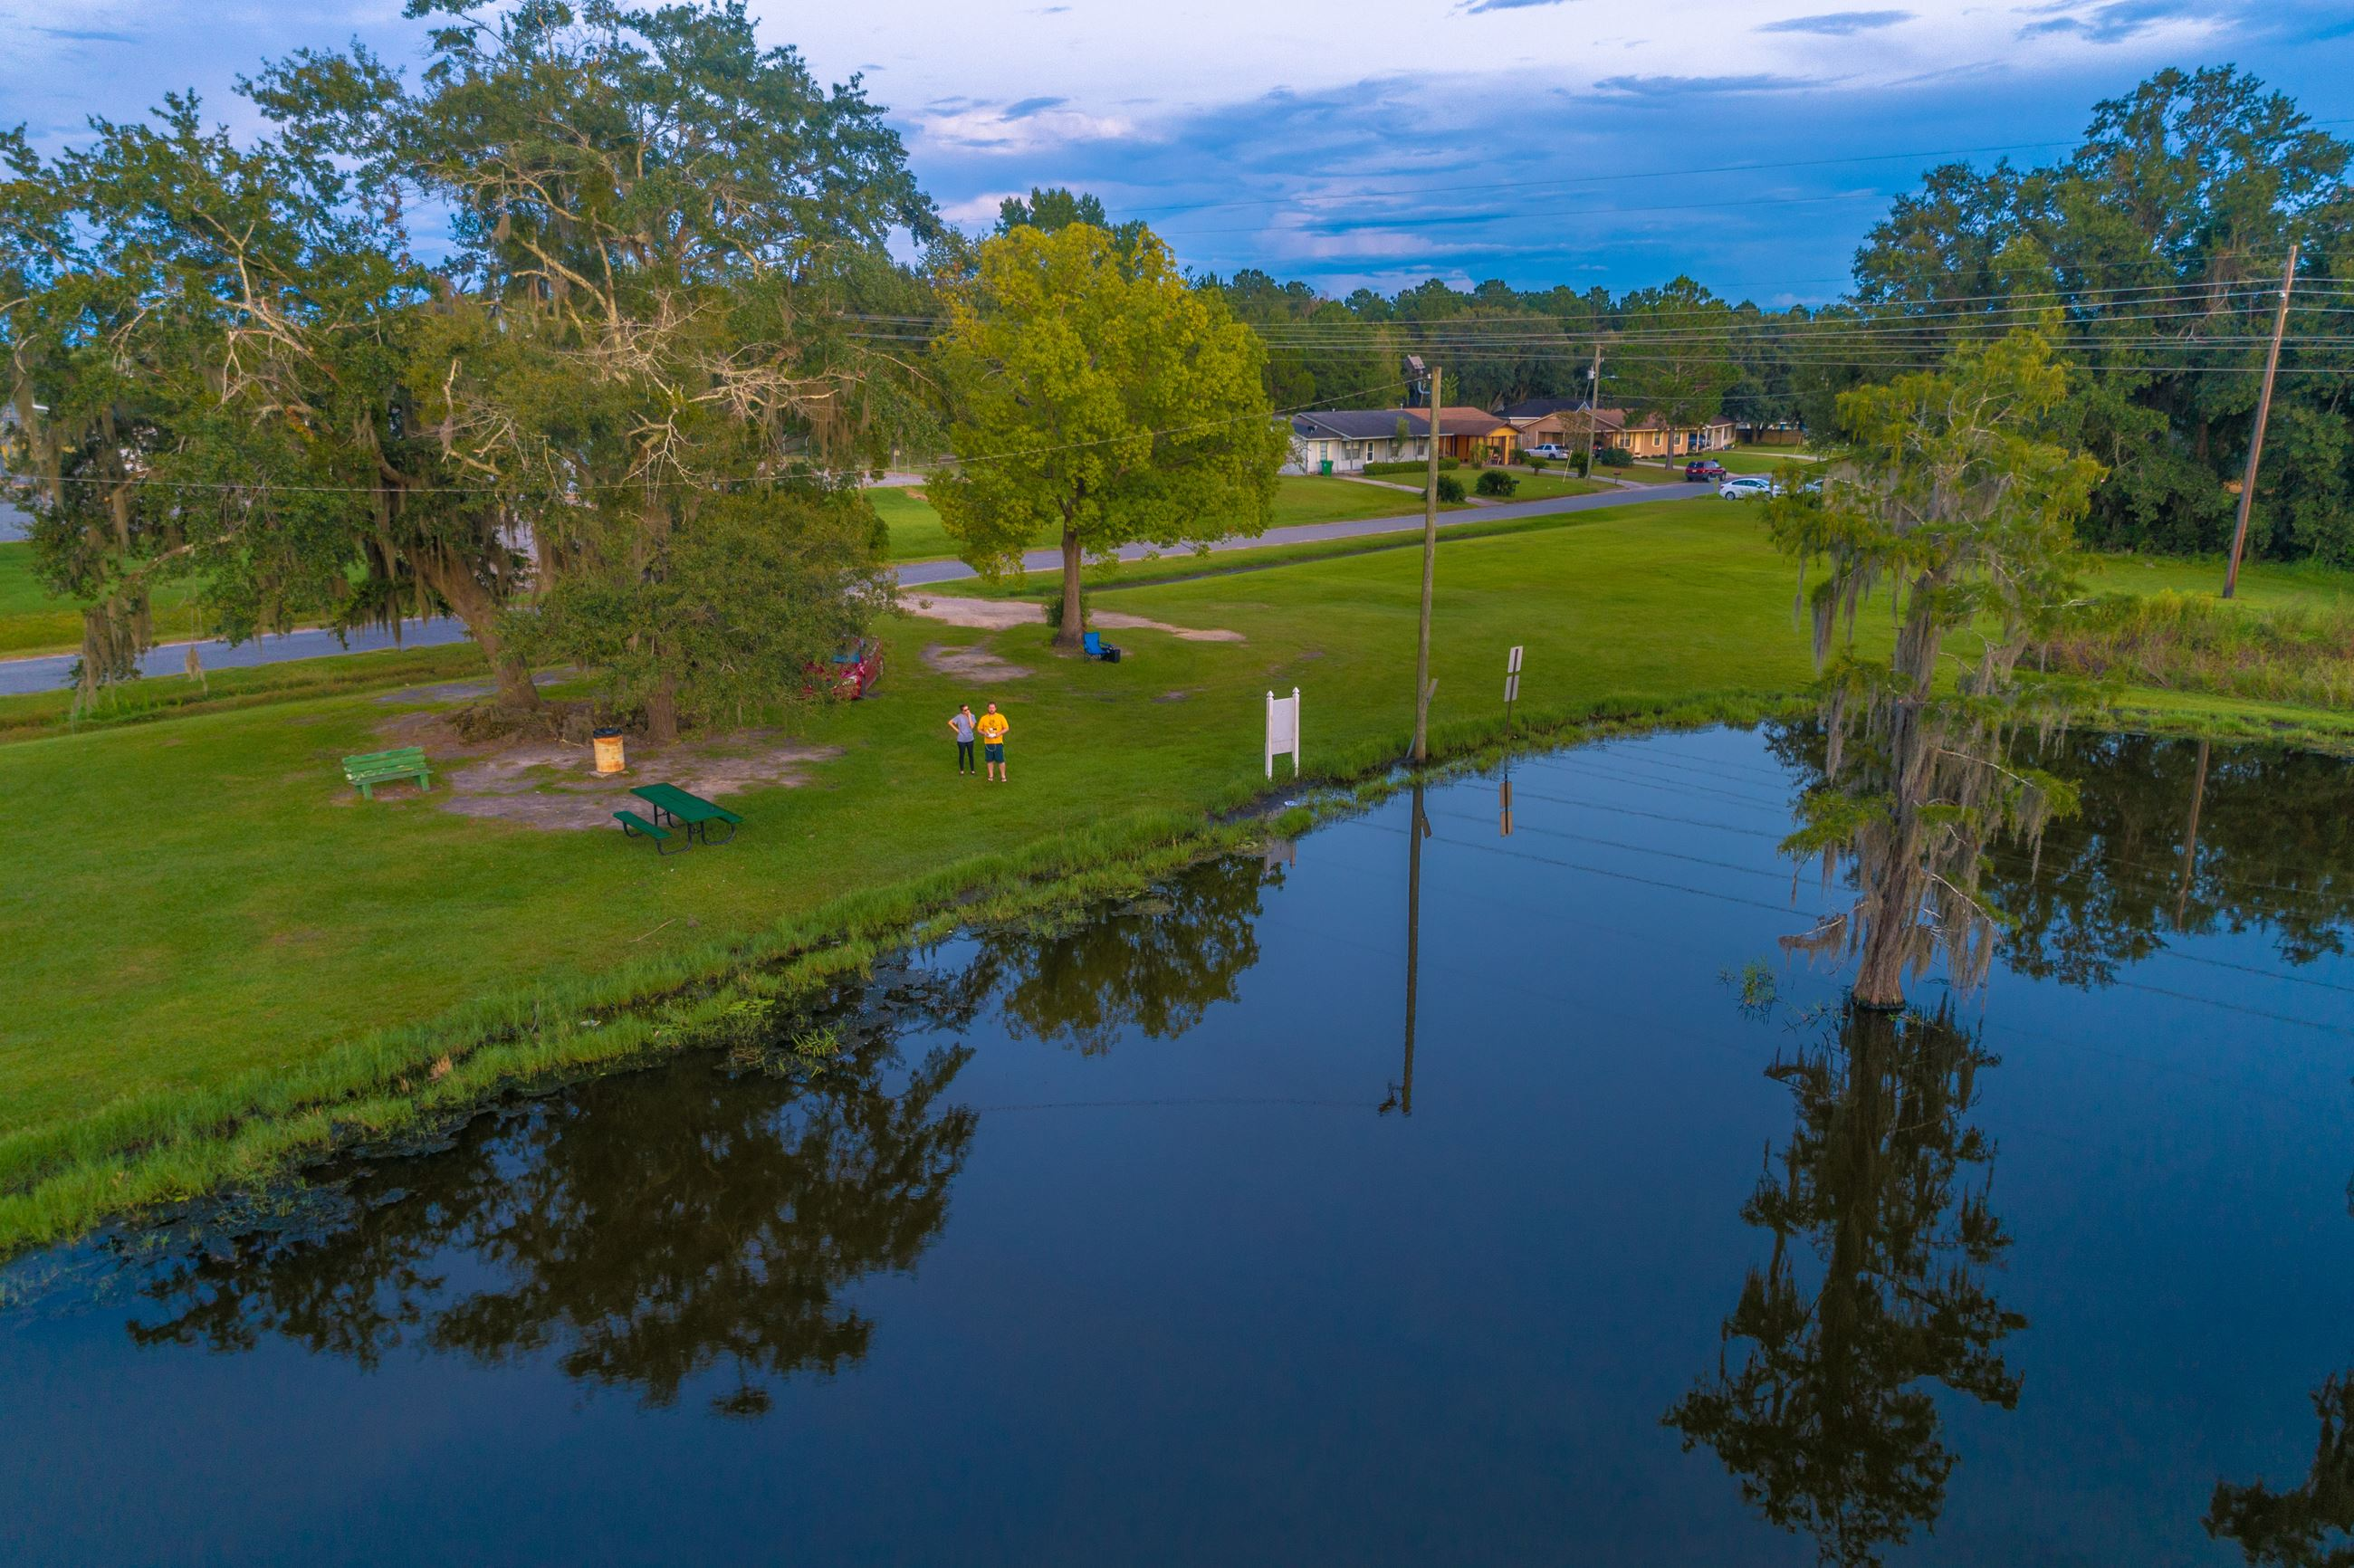 An image of an aerial view of pond with cypress trees at sunset.